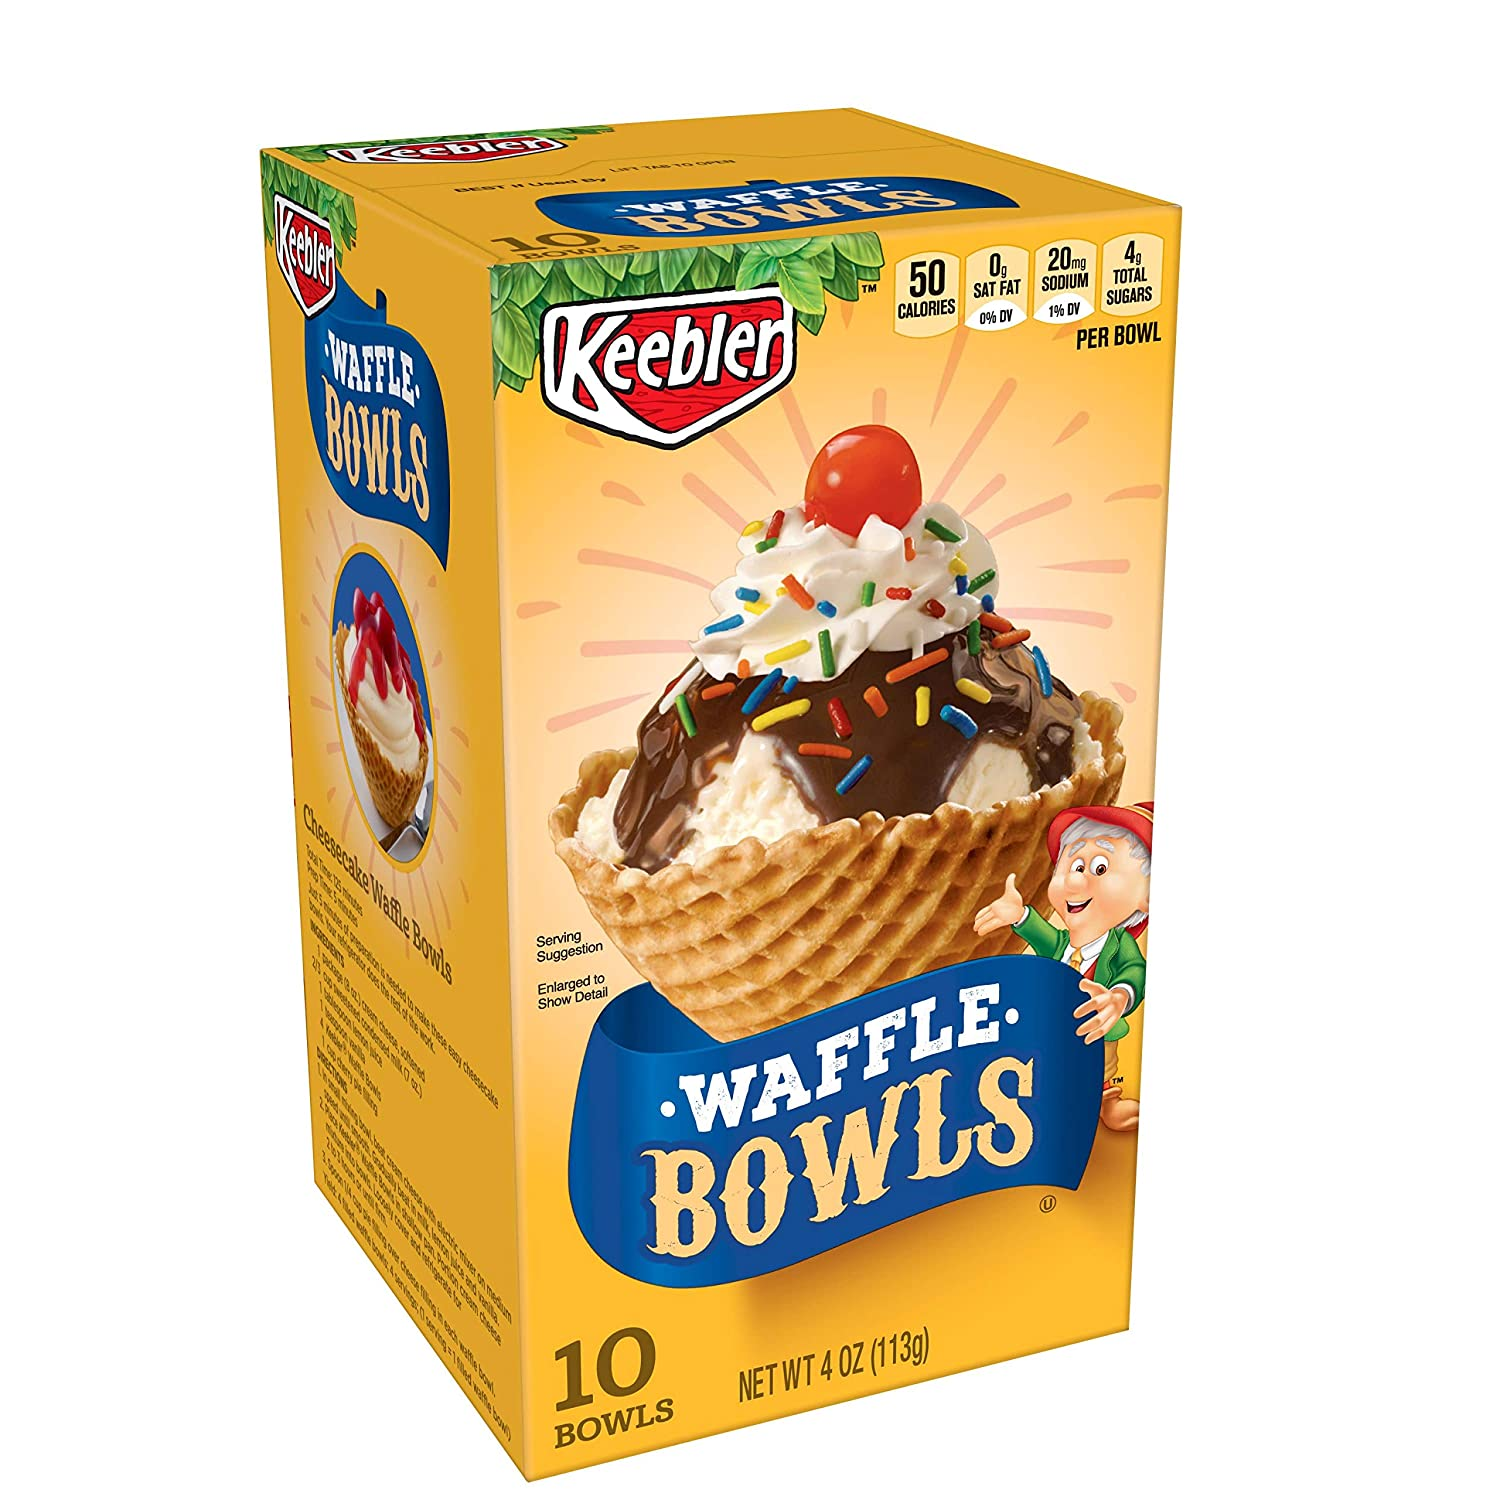 Keebler Cones, Ice Cream Waffle Bowls, 4 oz (10 Count)(Pack of 6)